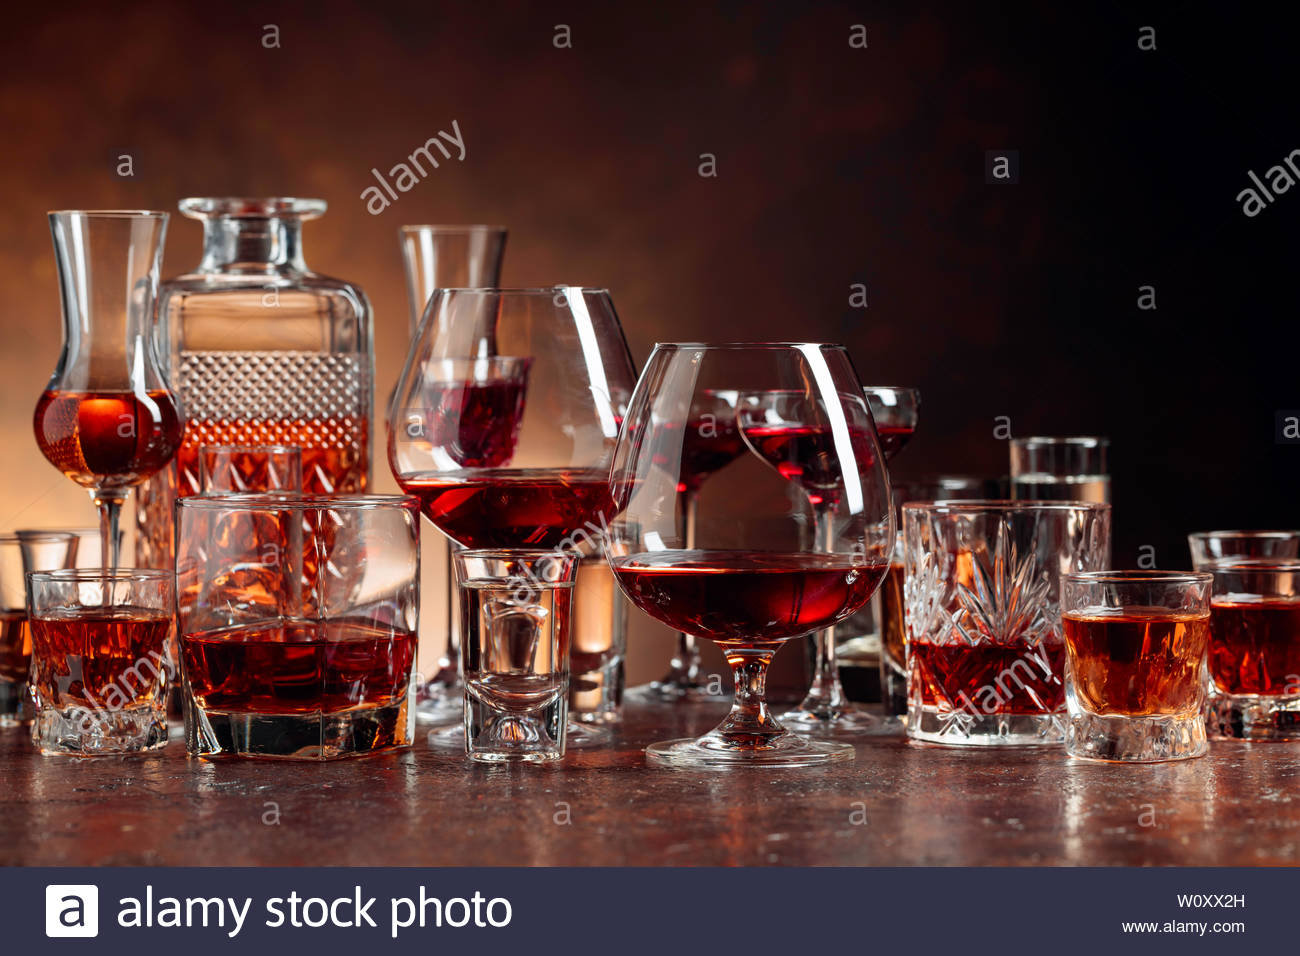 Set of strong alcoholic beverages in glasses on a brown background 1300x956